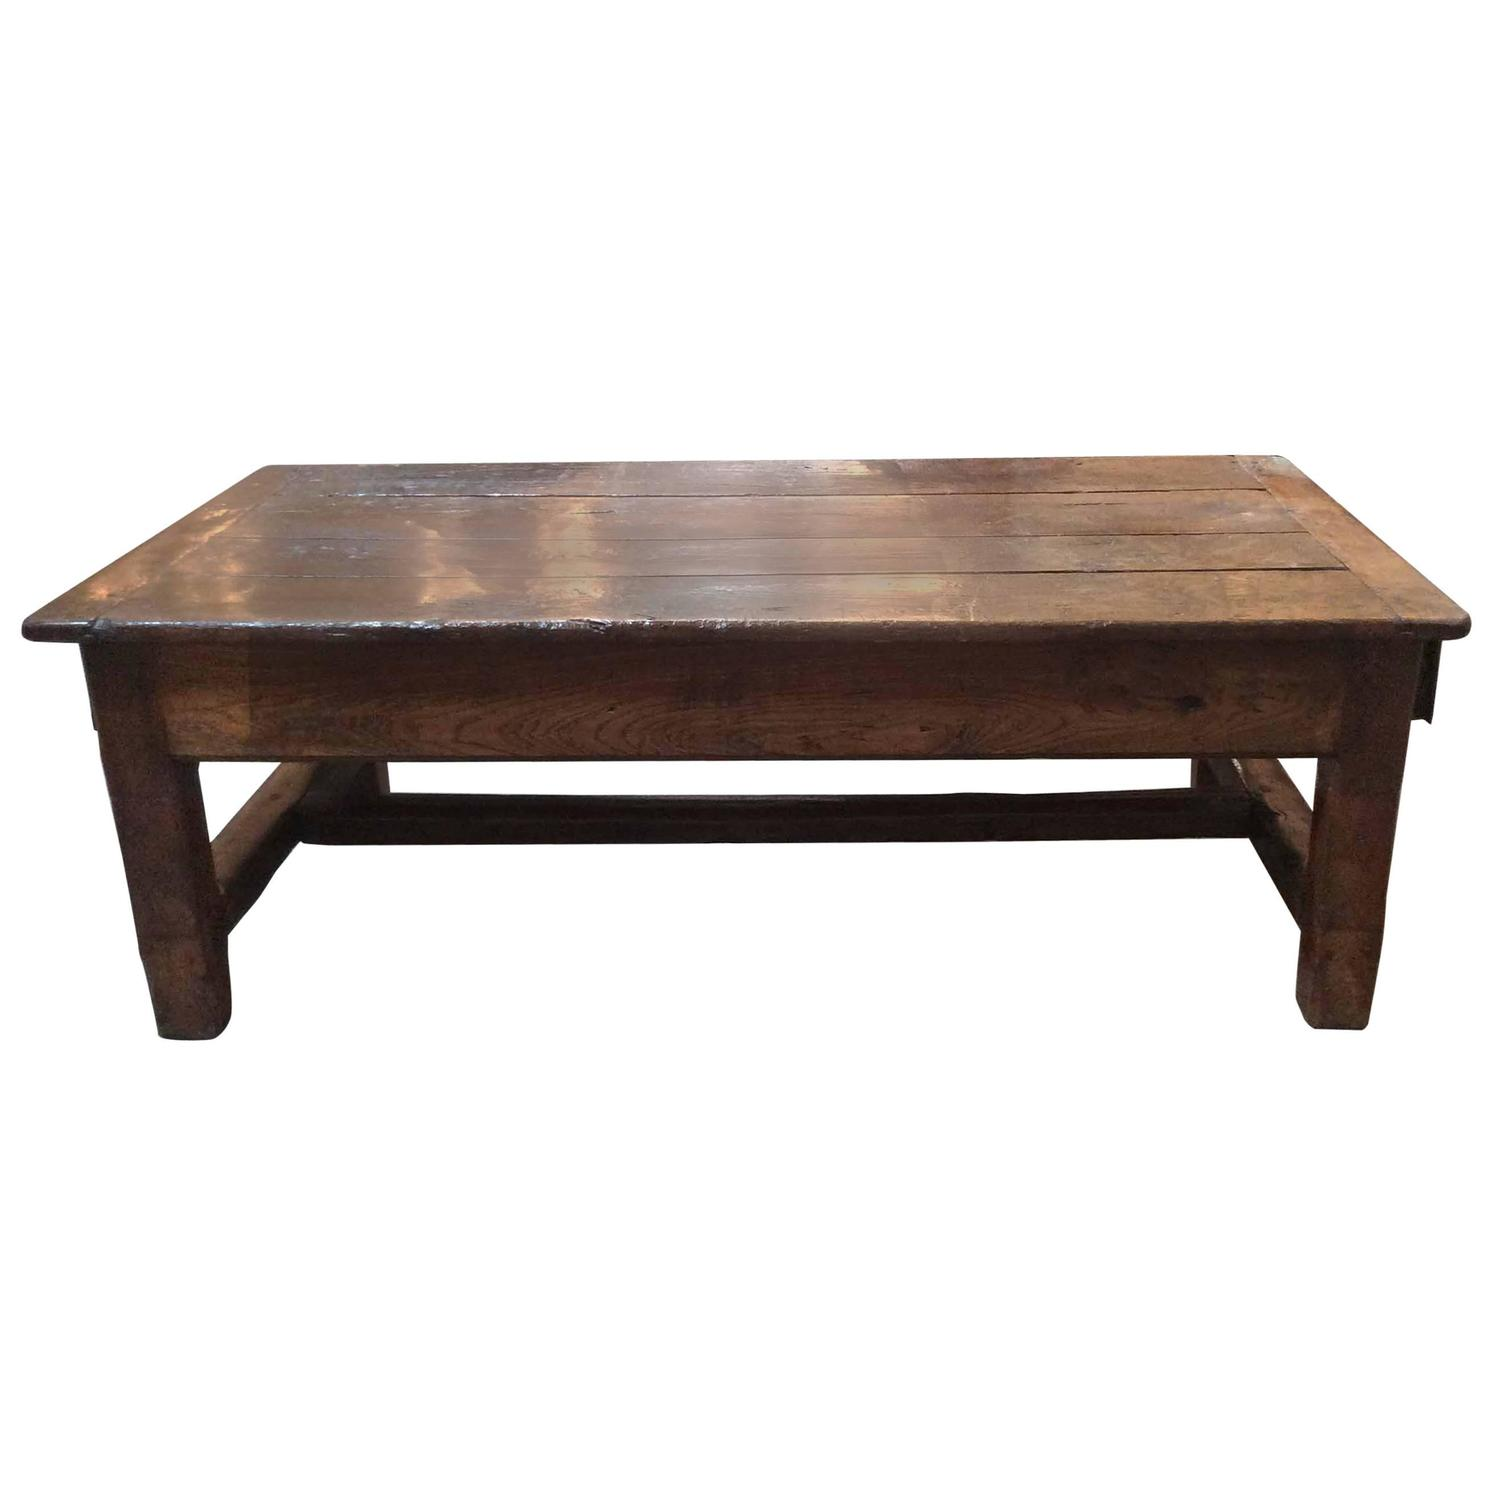 Antique French Farm Table at 1stdibs